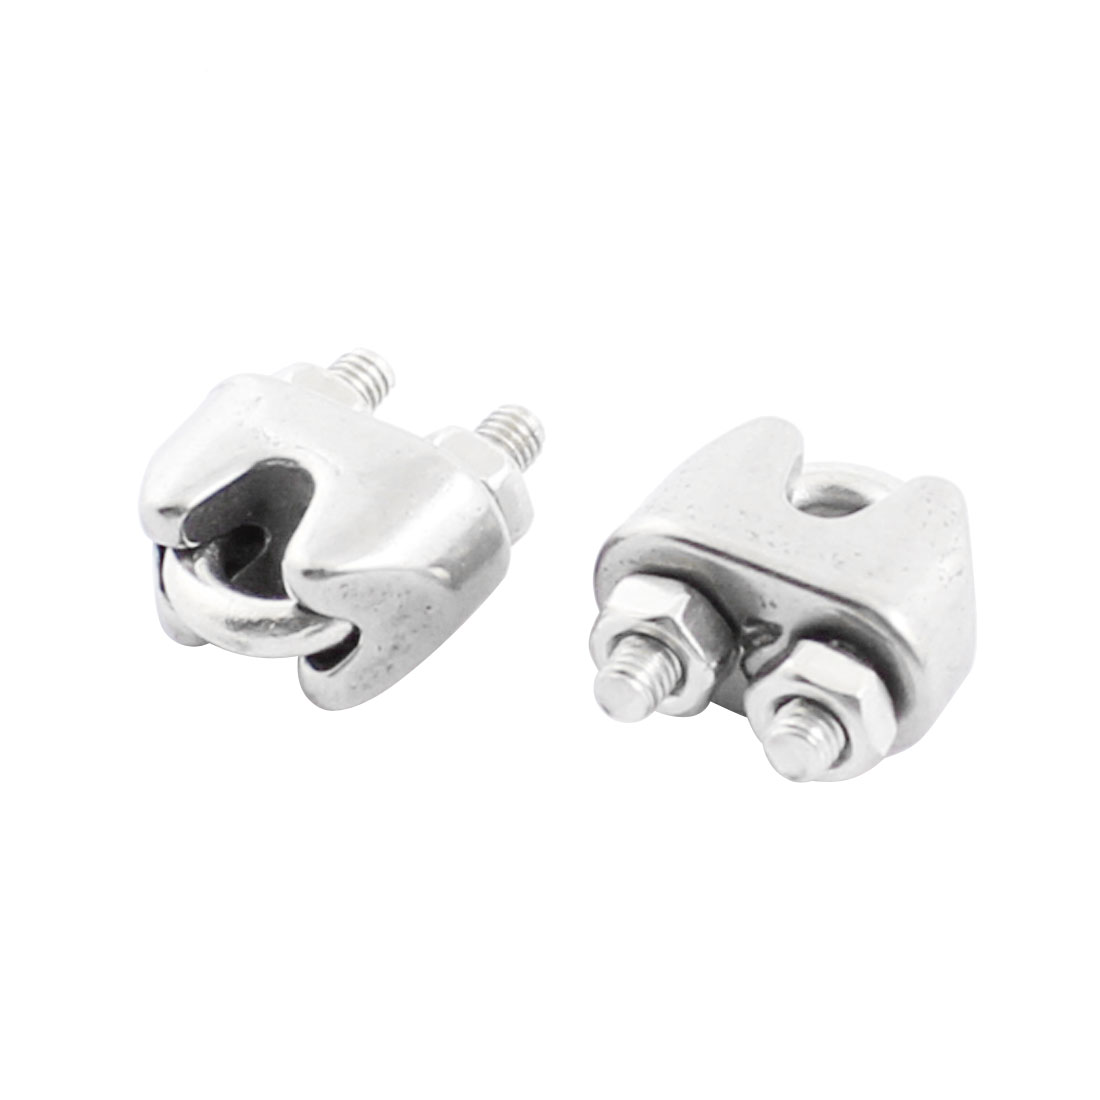 "2pcs Stainless Steel Cable Clip Saddle Clamp for 2/25"" 2mm Wire Ropes"